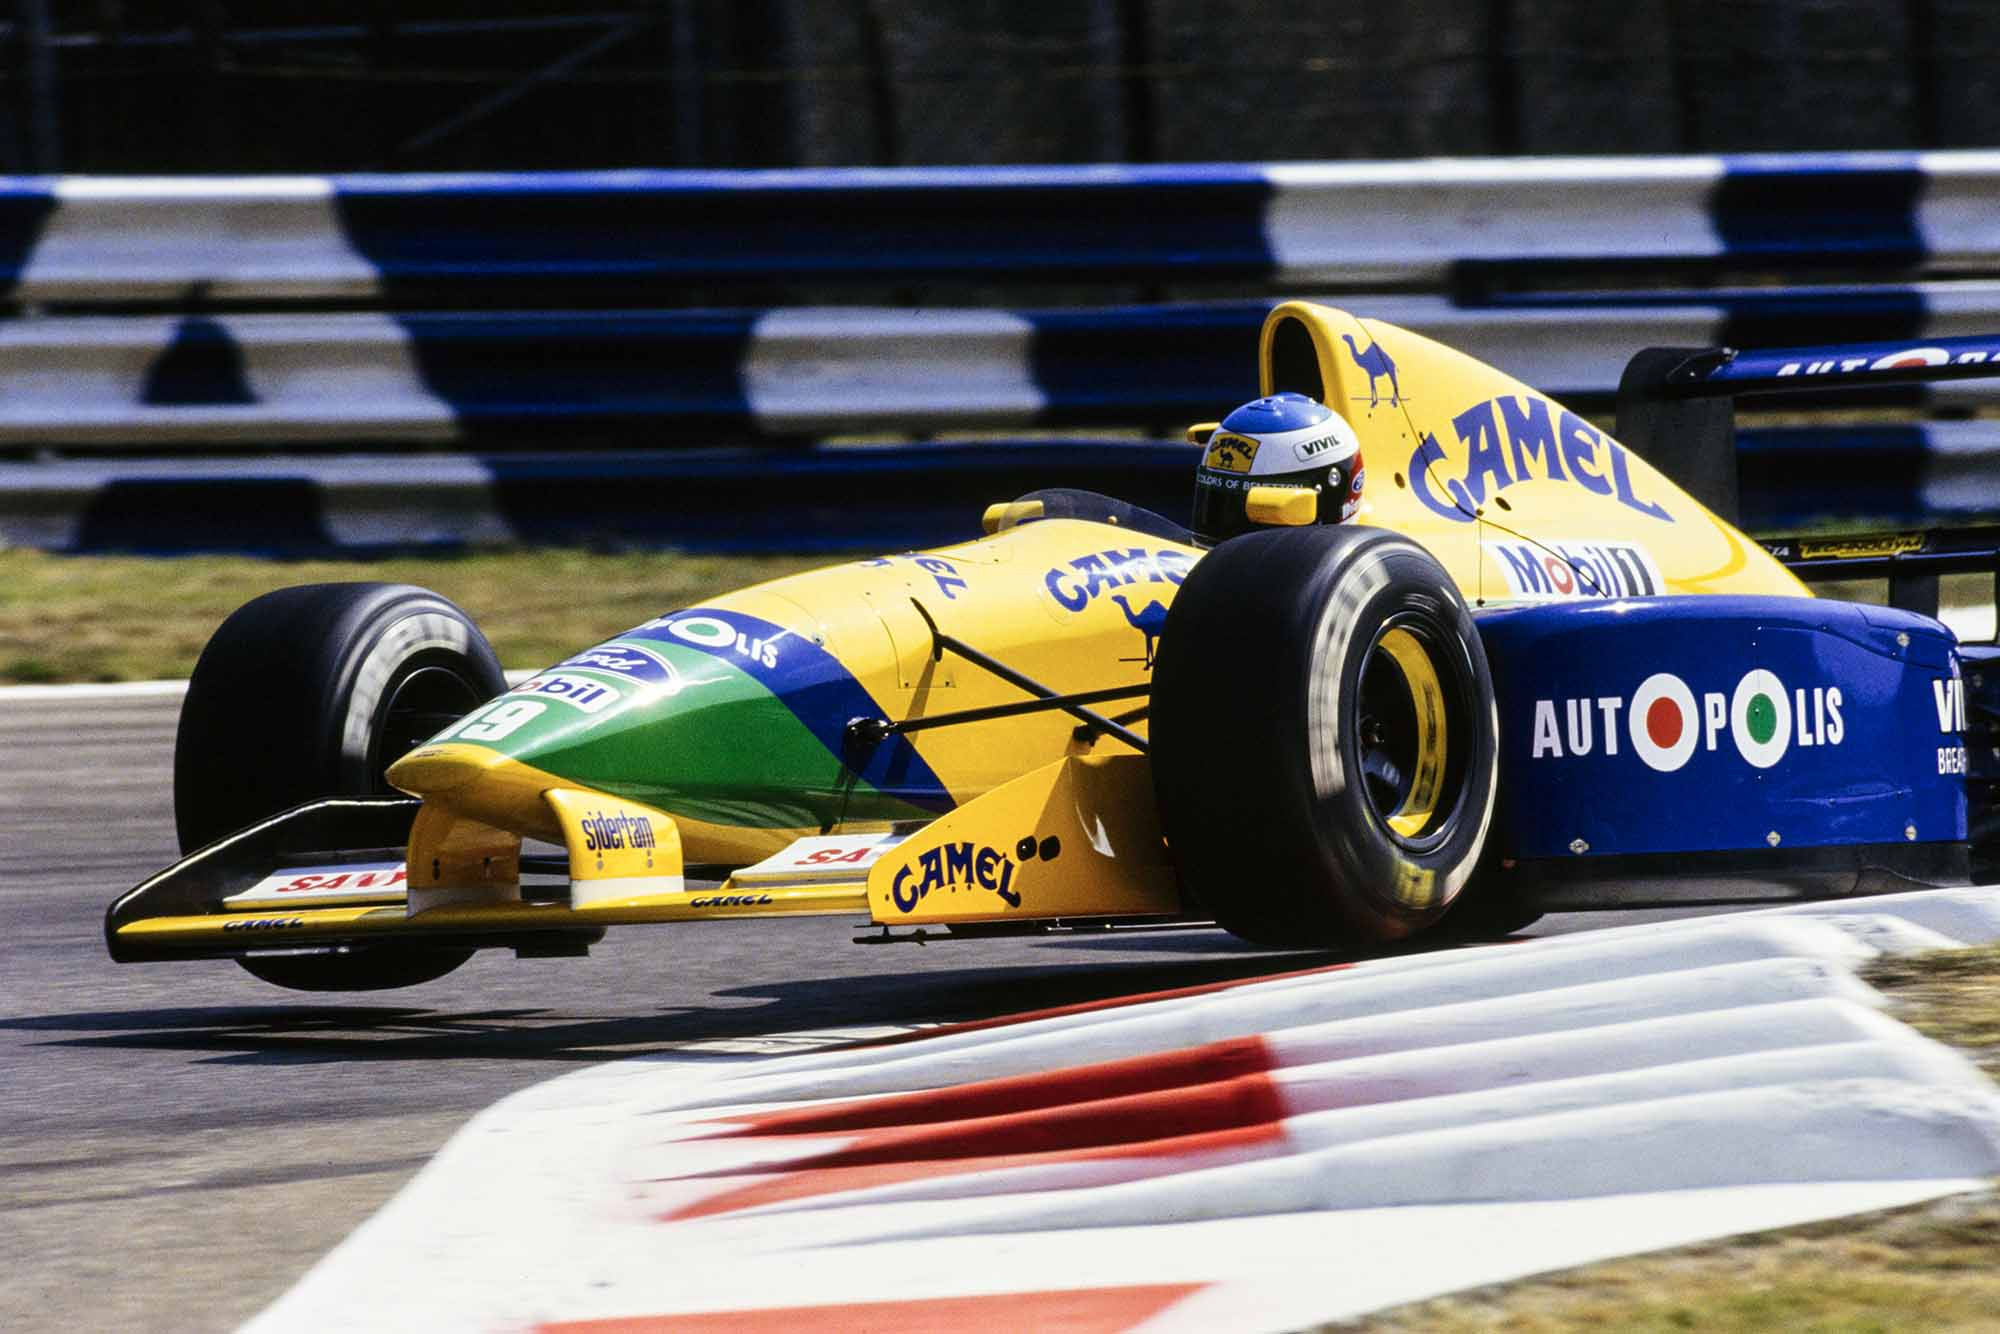 Michael Schumacher flies over chicane in his Benetton at the 1991 Italian Grand Prix